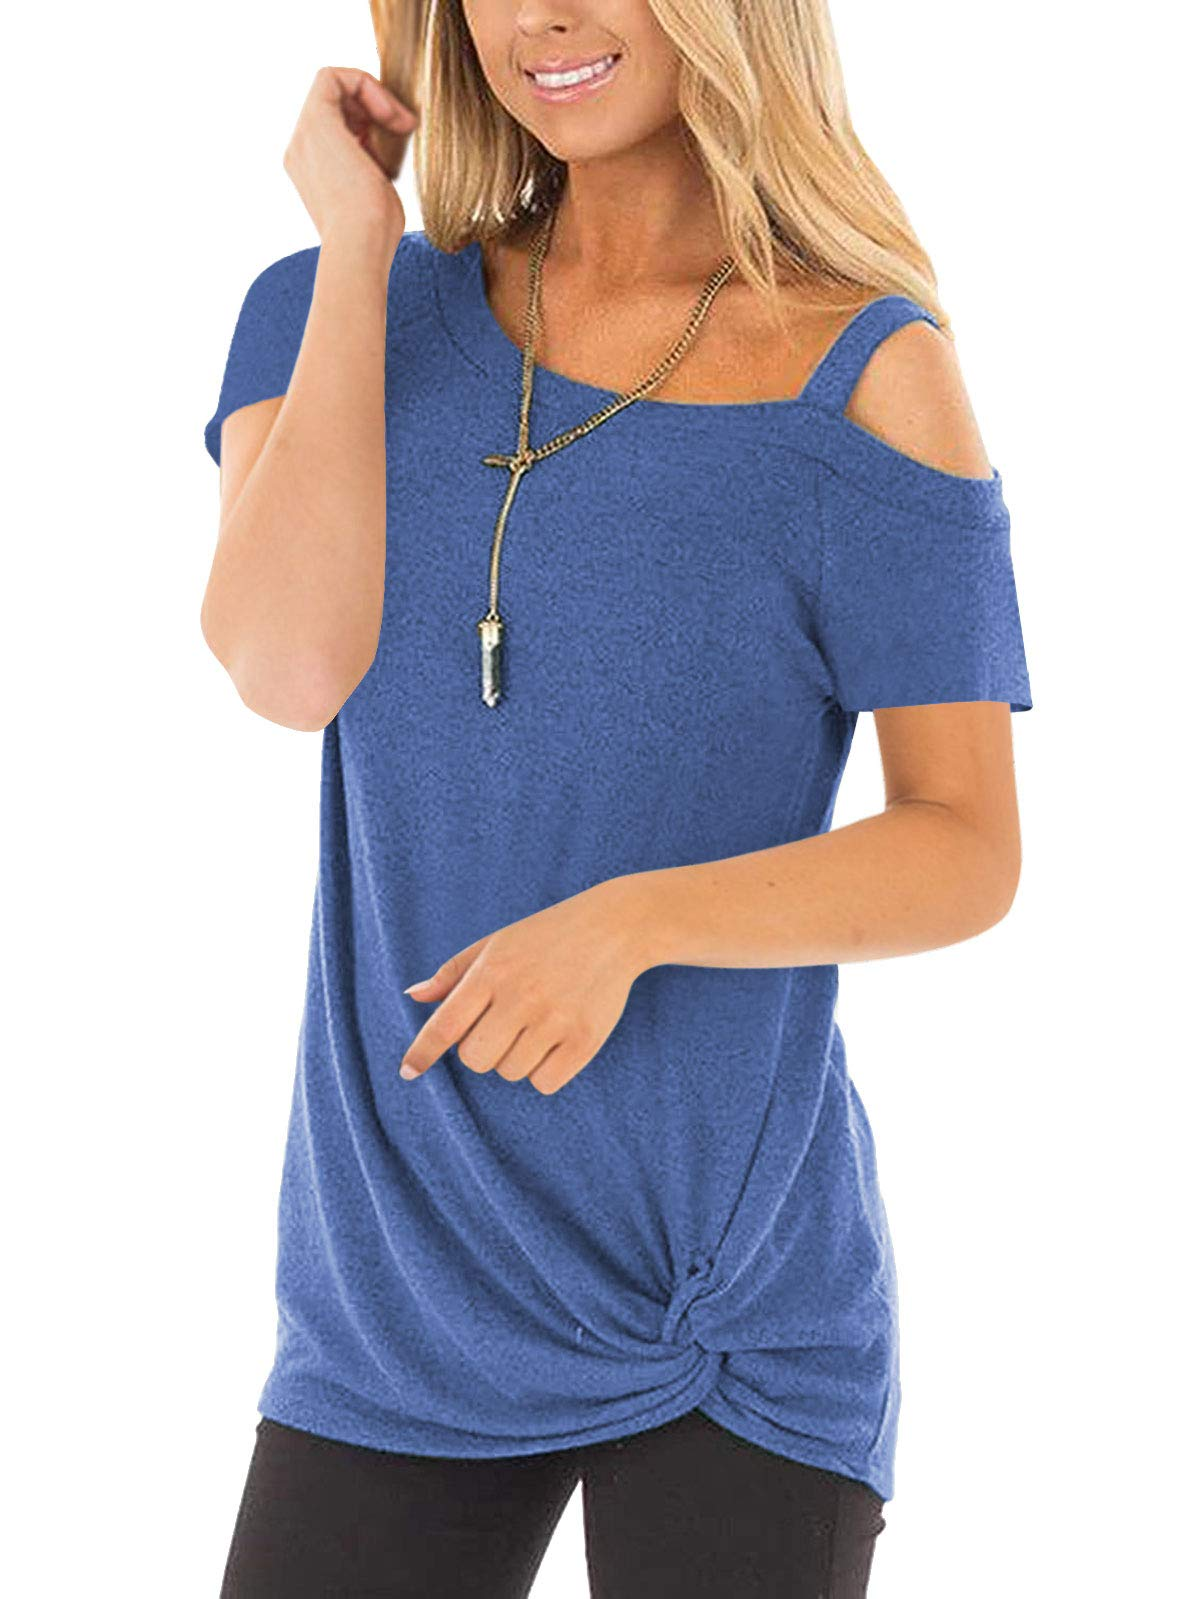 IMIDO Womens Cold Shoulder Tops Front Knot Side Twist Shirts One Shoulder Blouse Short Sleeve Tunic (L, B-Blue)